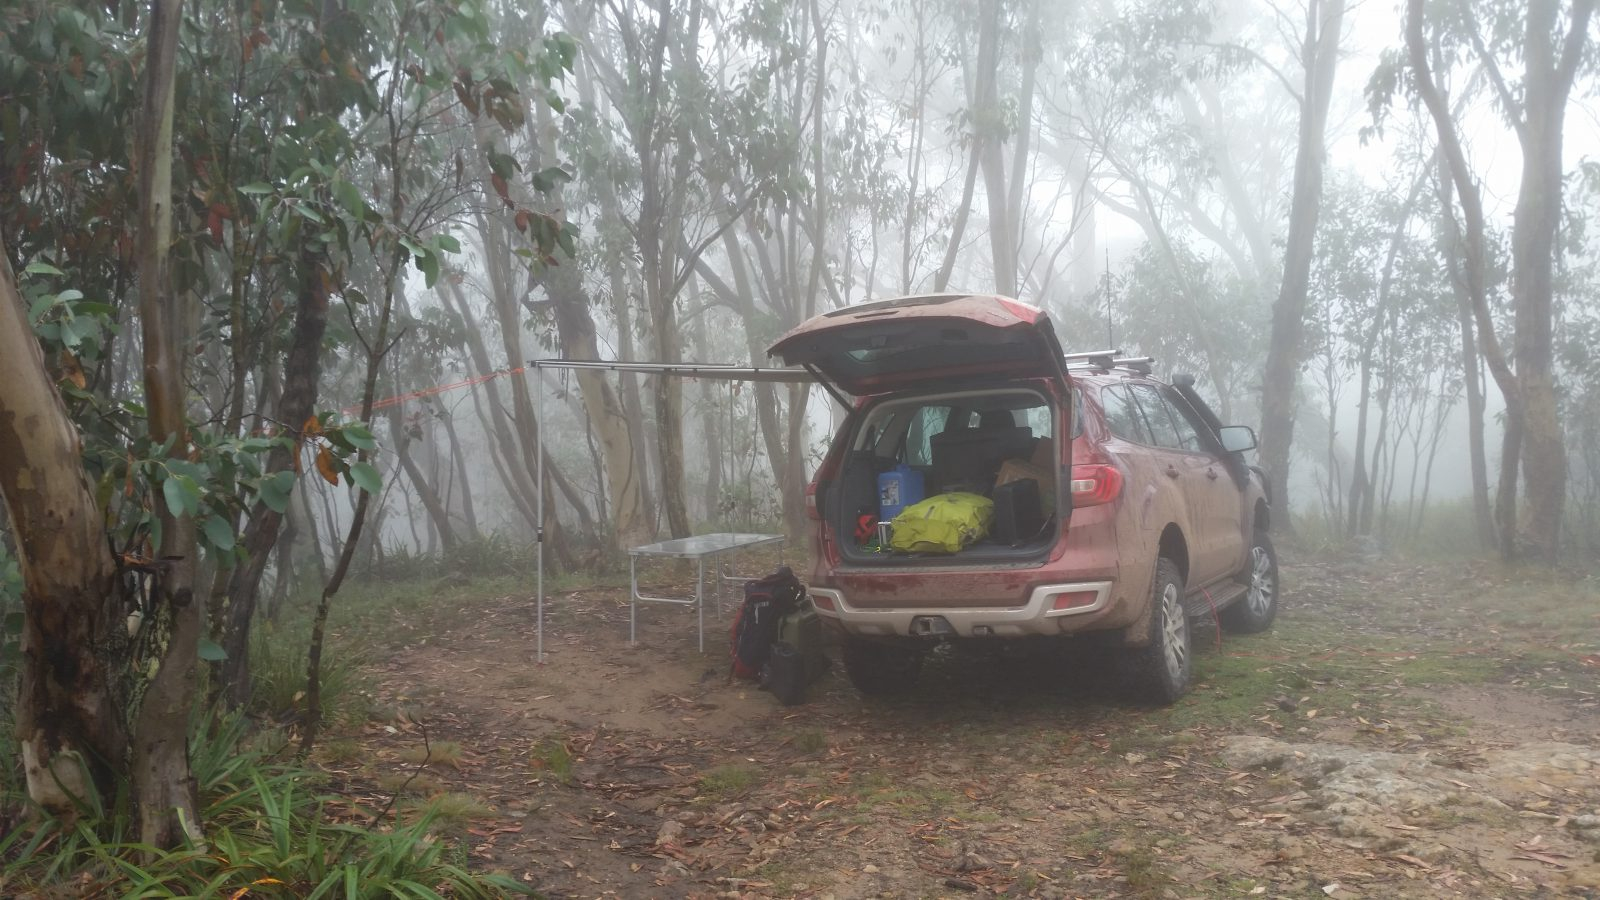 The Camp Creek site when we arrived - very foggy